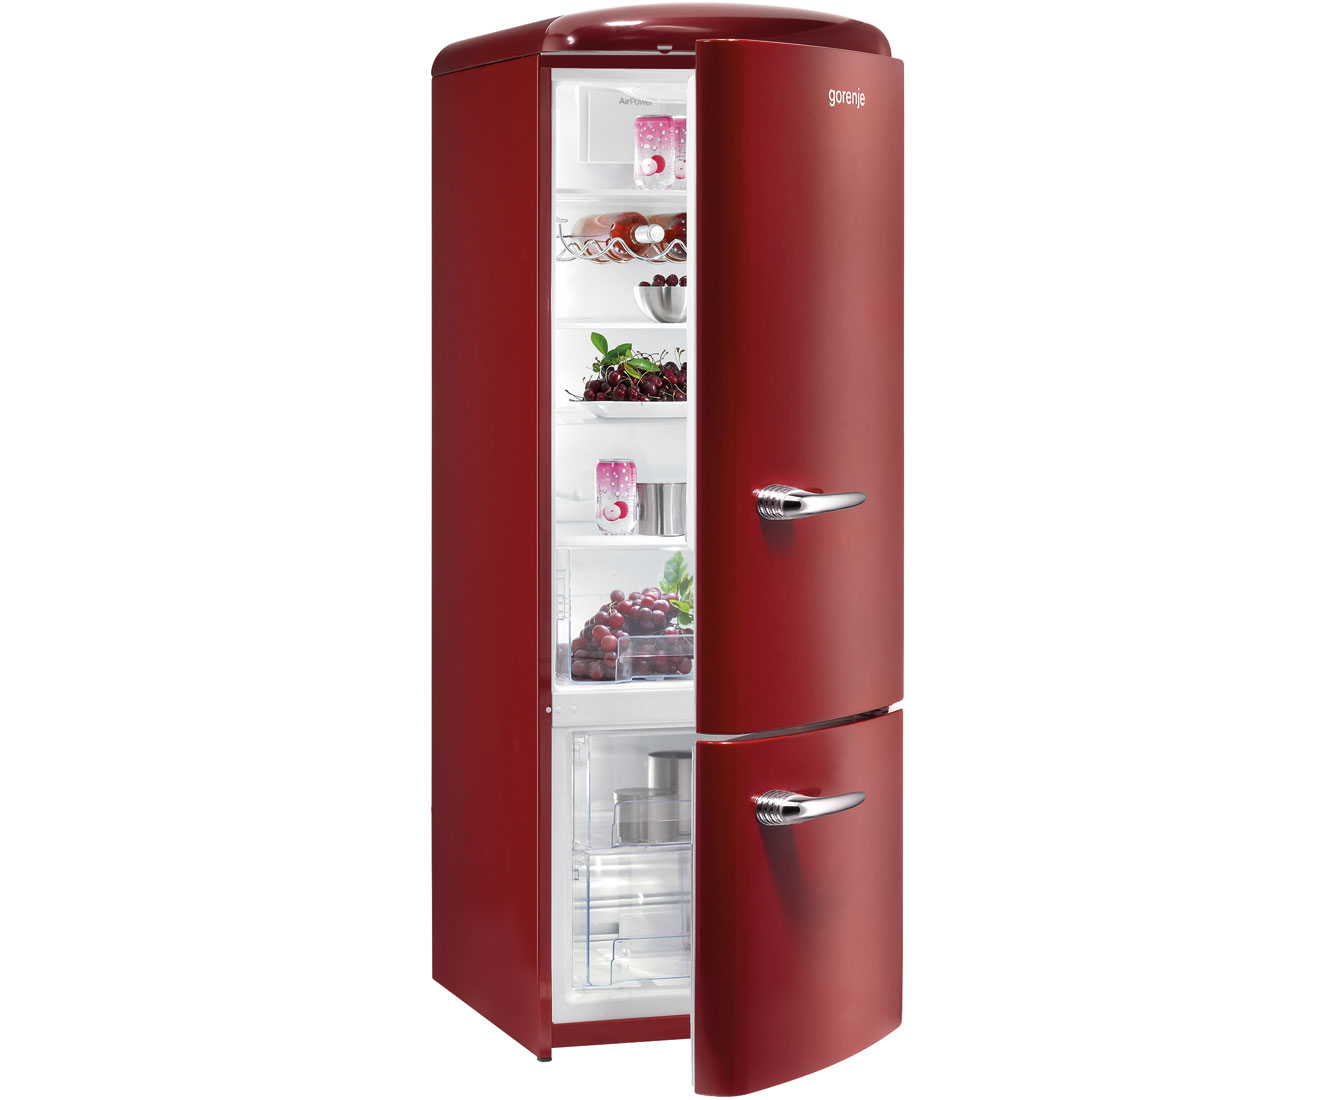 gorenje retro collection rk 60319 or k hl gefrierkombination 60er breite bordeaux rot retro. Black Bedroom Furniture Sets. Home Design Ideas